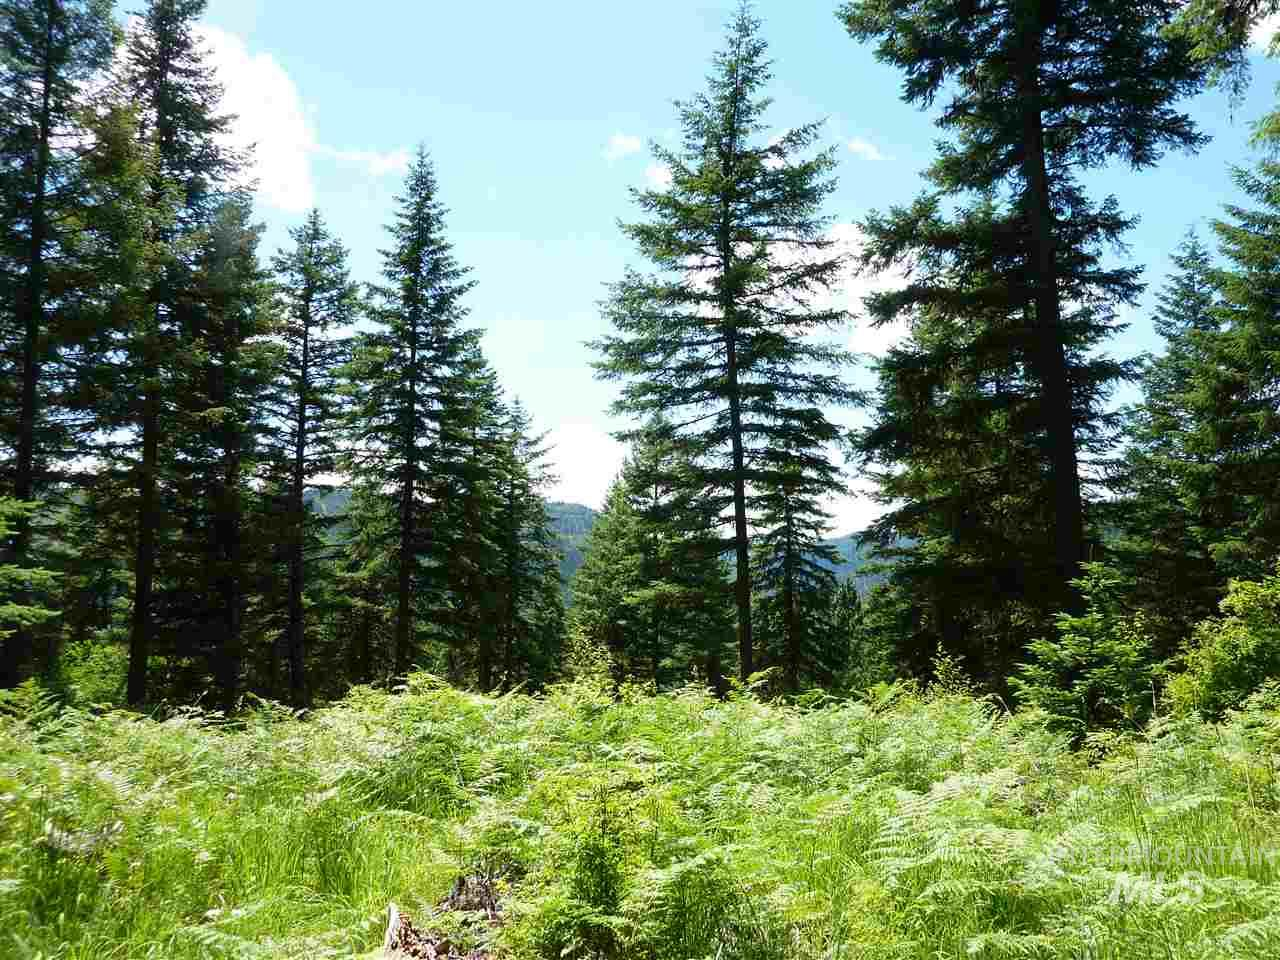 TBD RACOON LANE, Orofino, Idaho 83544-9999, Land For Sale, Price $47,500, 98725667